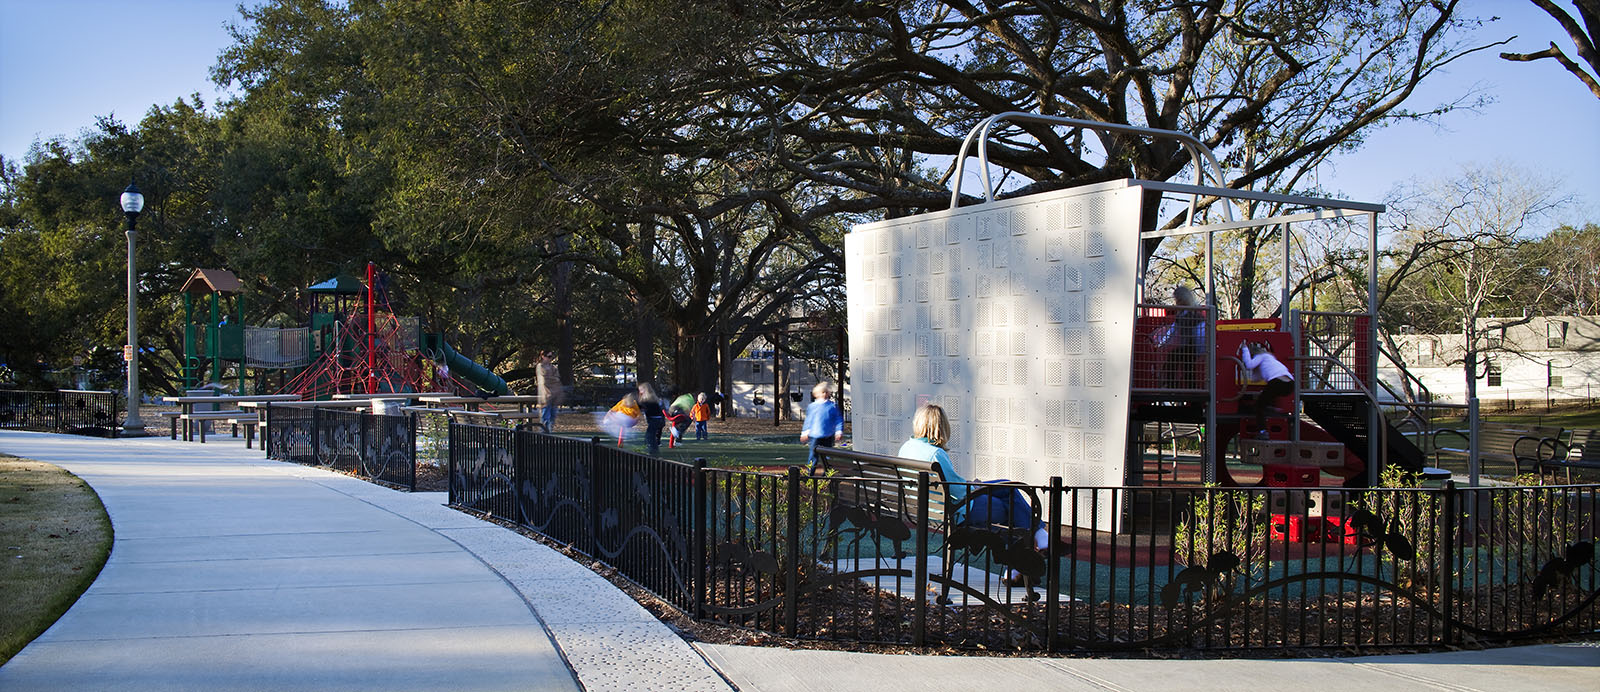 Renovated City Park located in Baton Rouge, Louisiana designed by landscape architects Carol R Johnson Associates.